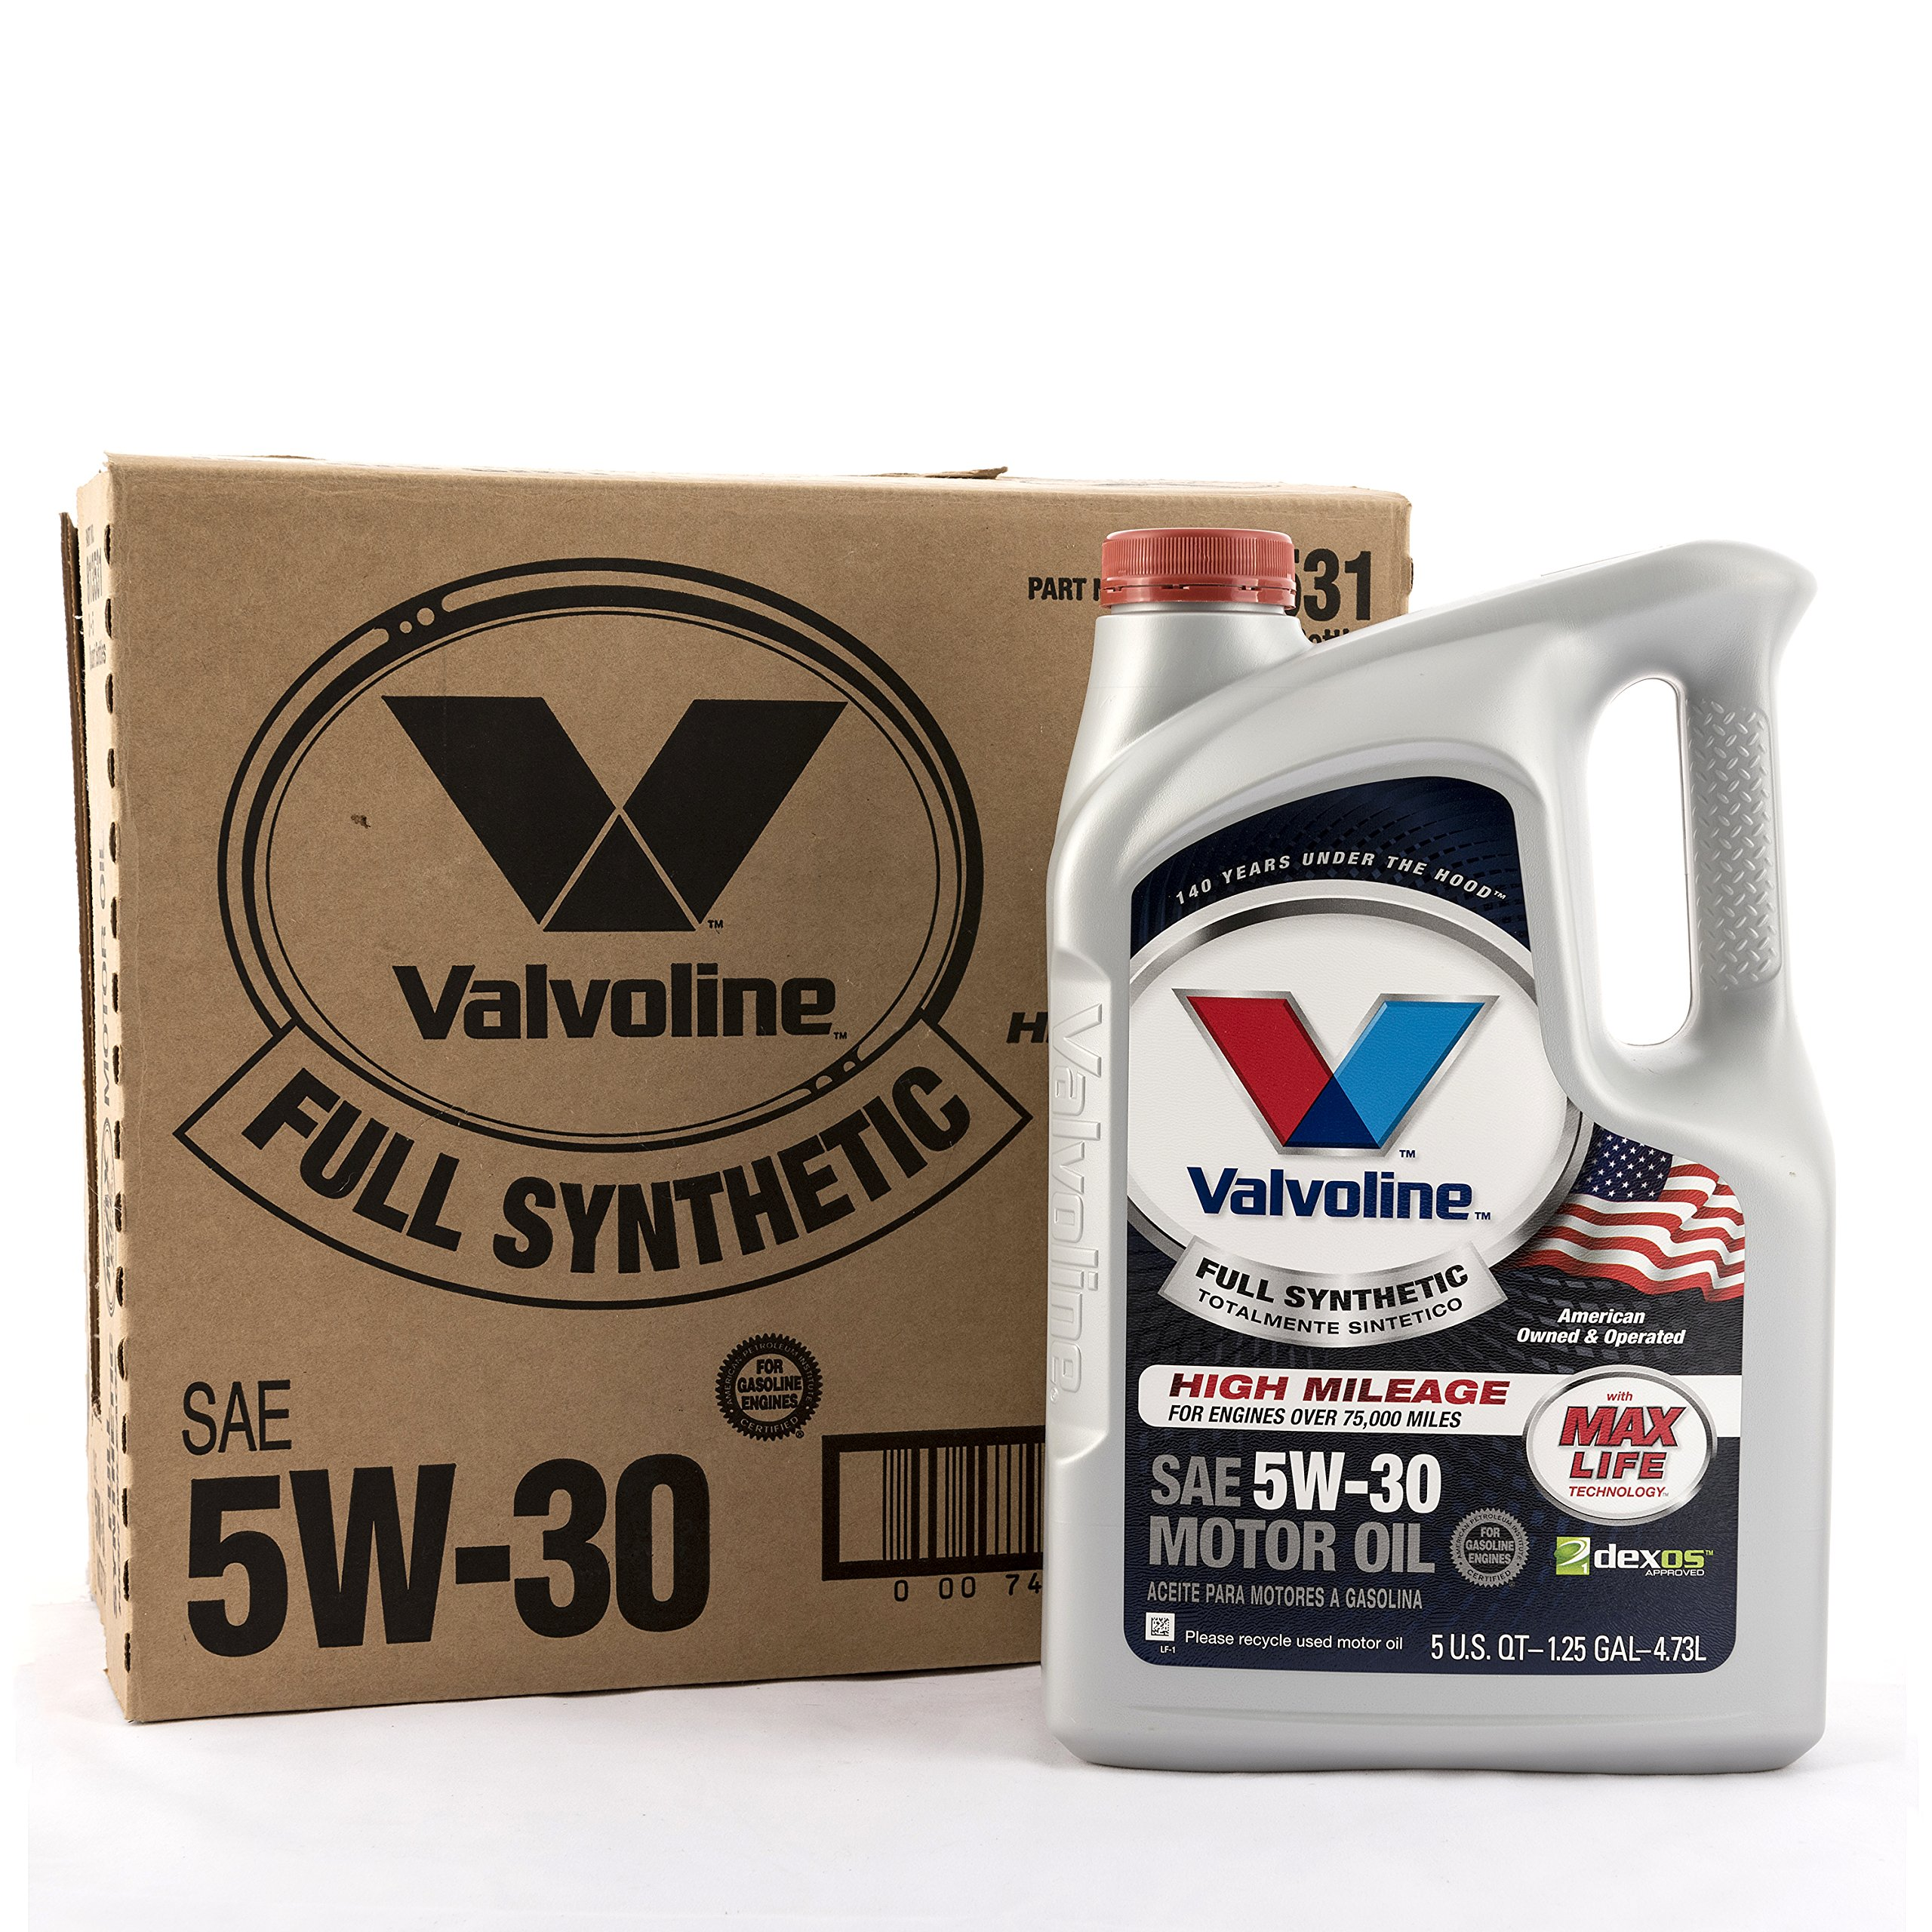 Valvoline 5W-30 Full Synthetic High Mileage Motor Oil - 5qt (Case of 3) (813531-3PK) by Valvoline